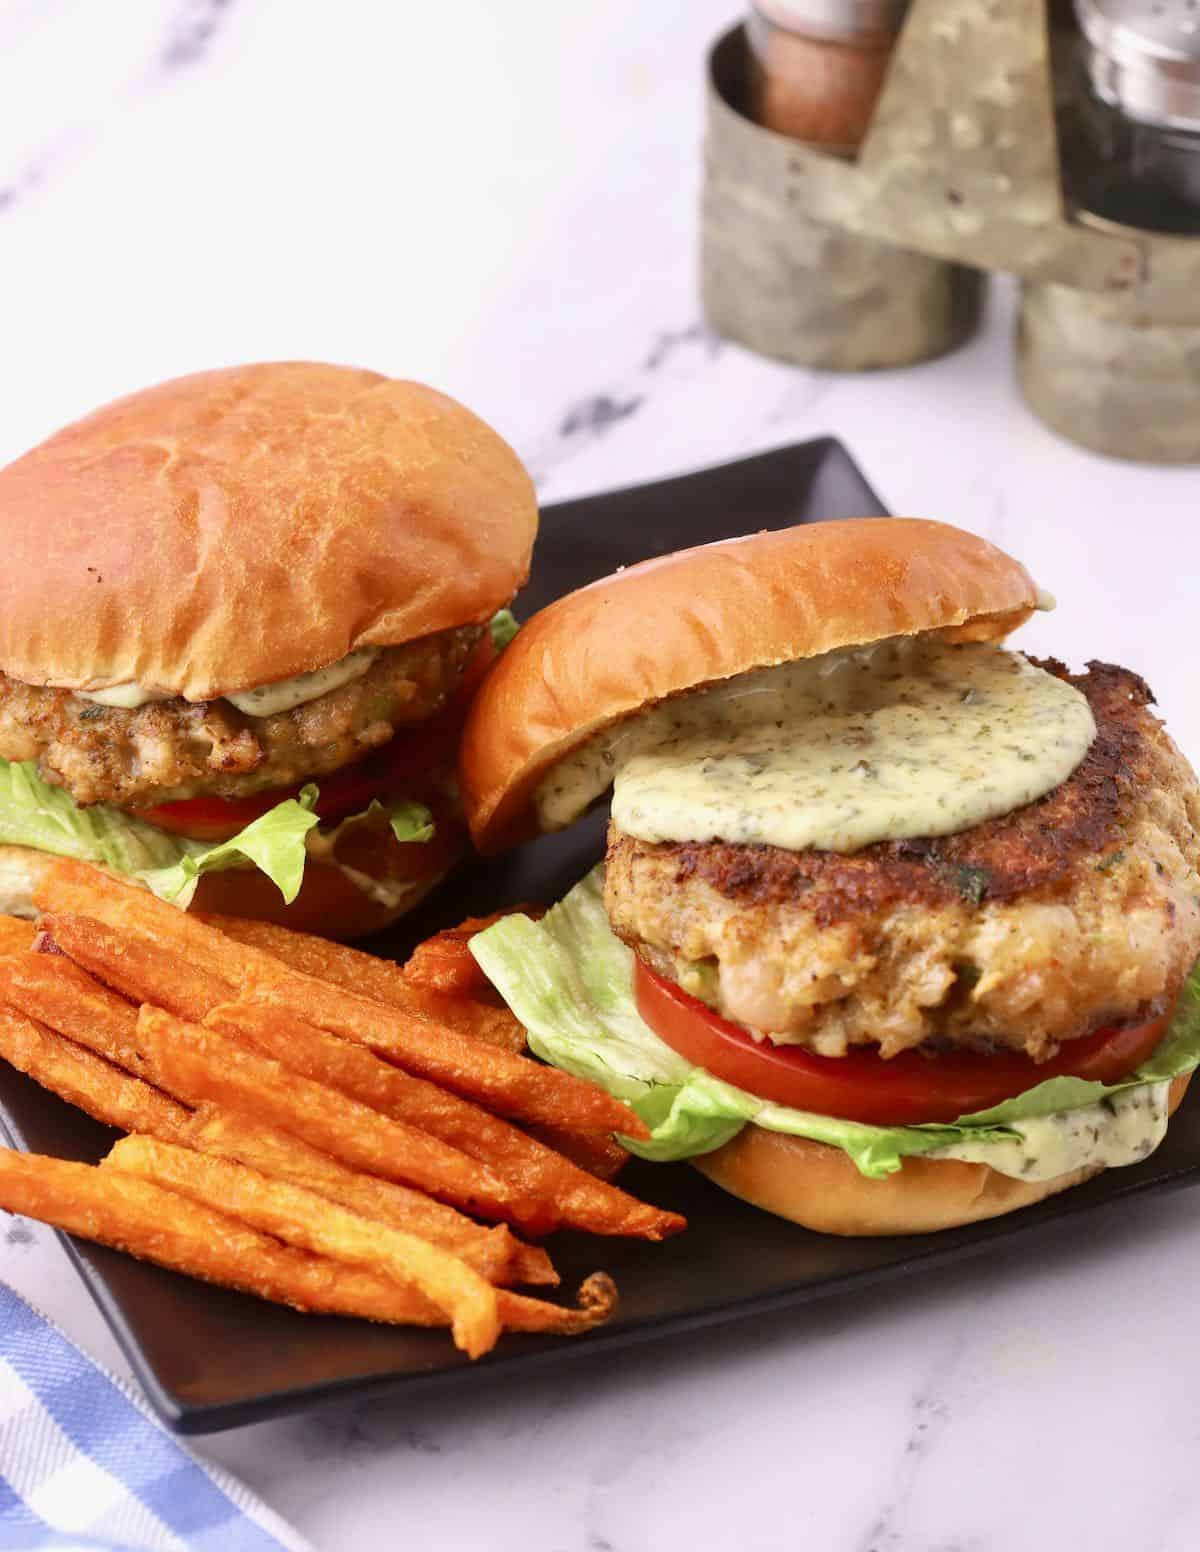 Two shrimp burgers on a black plate.